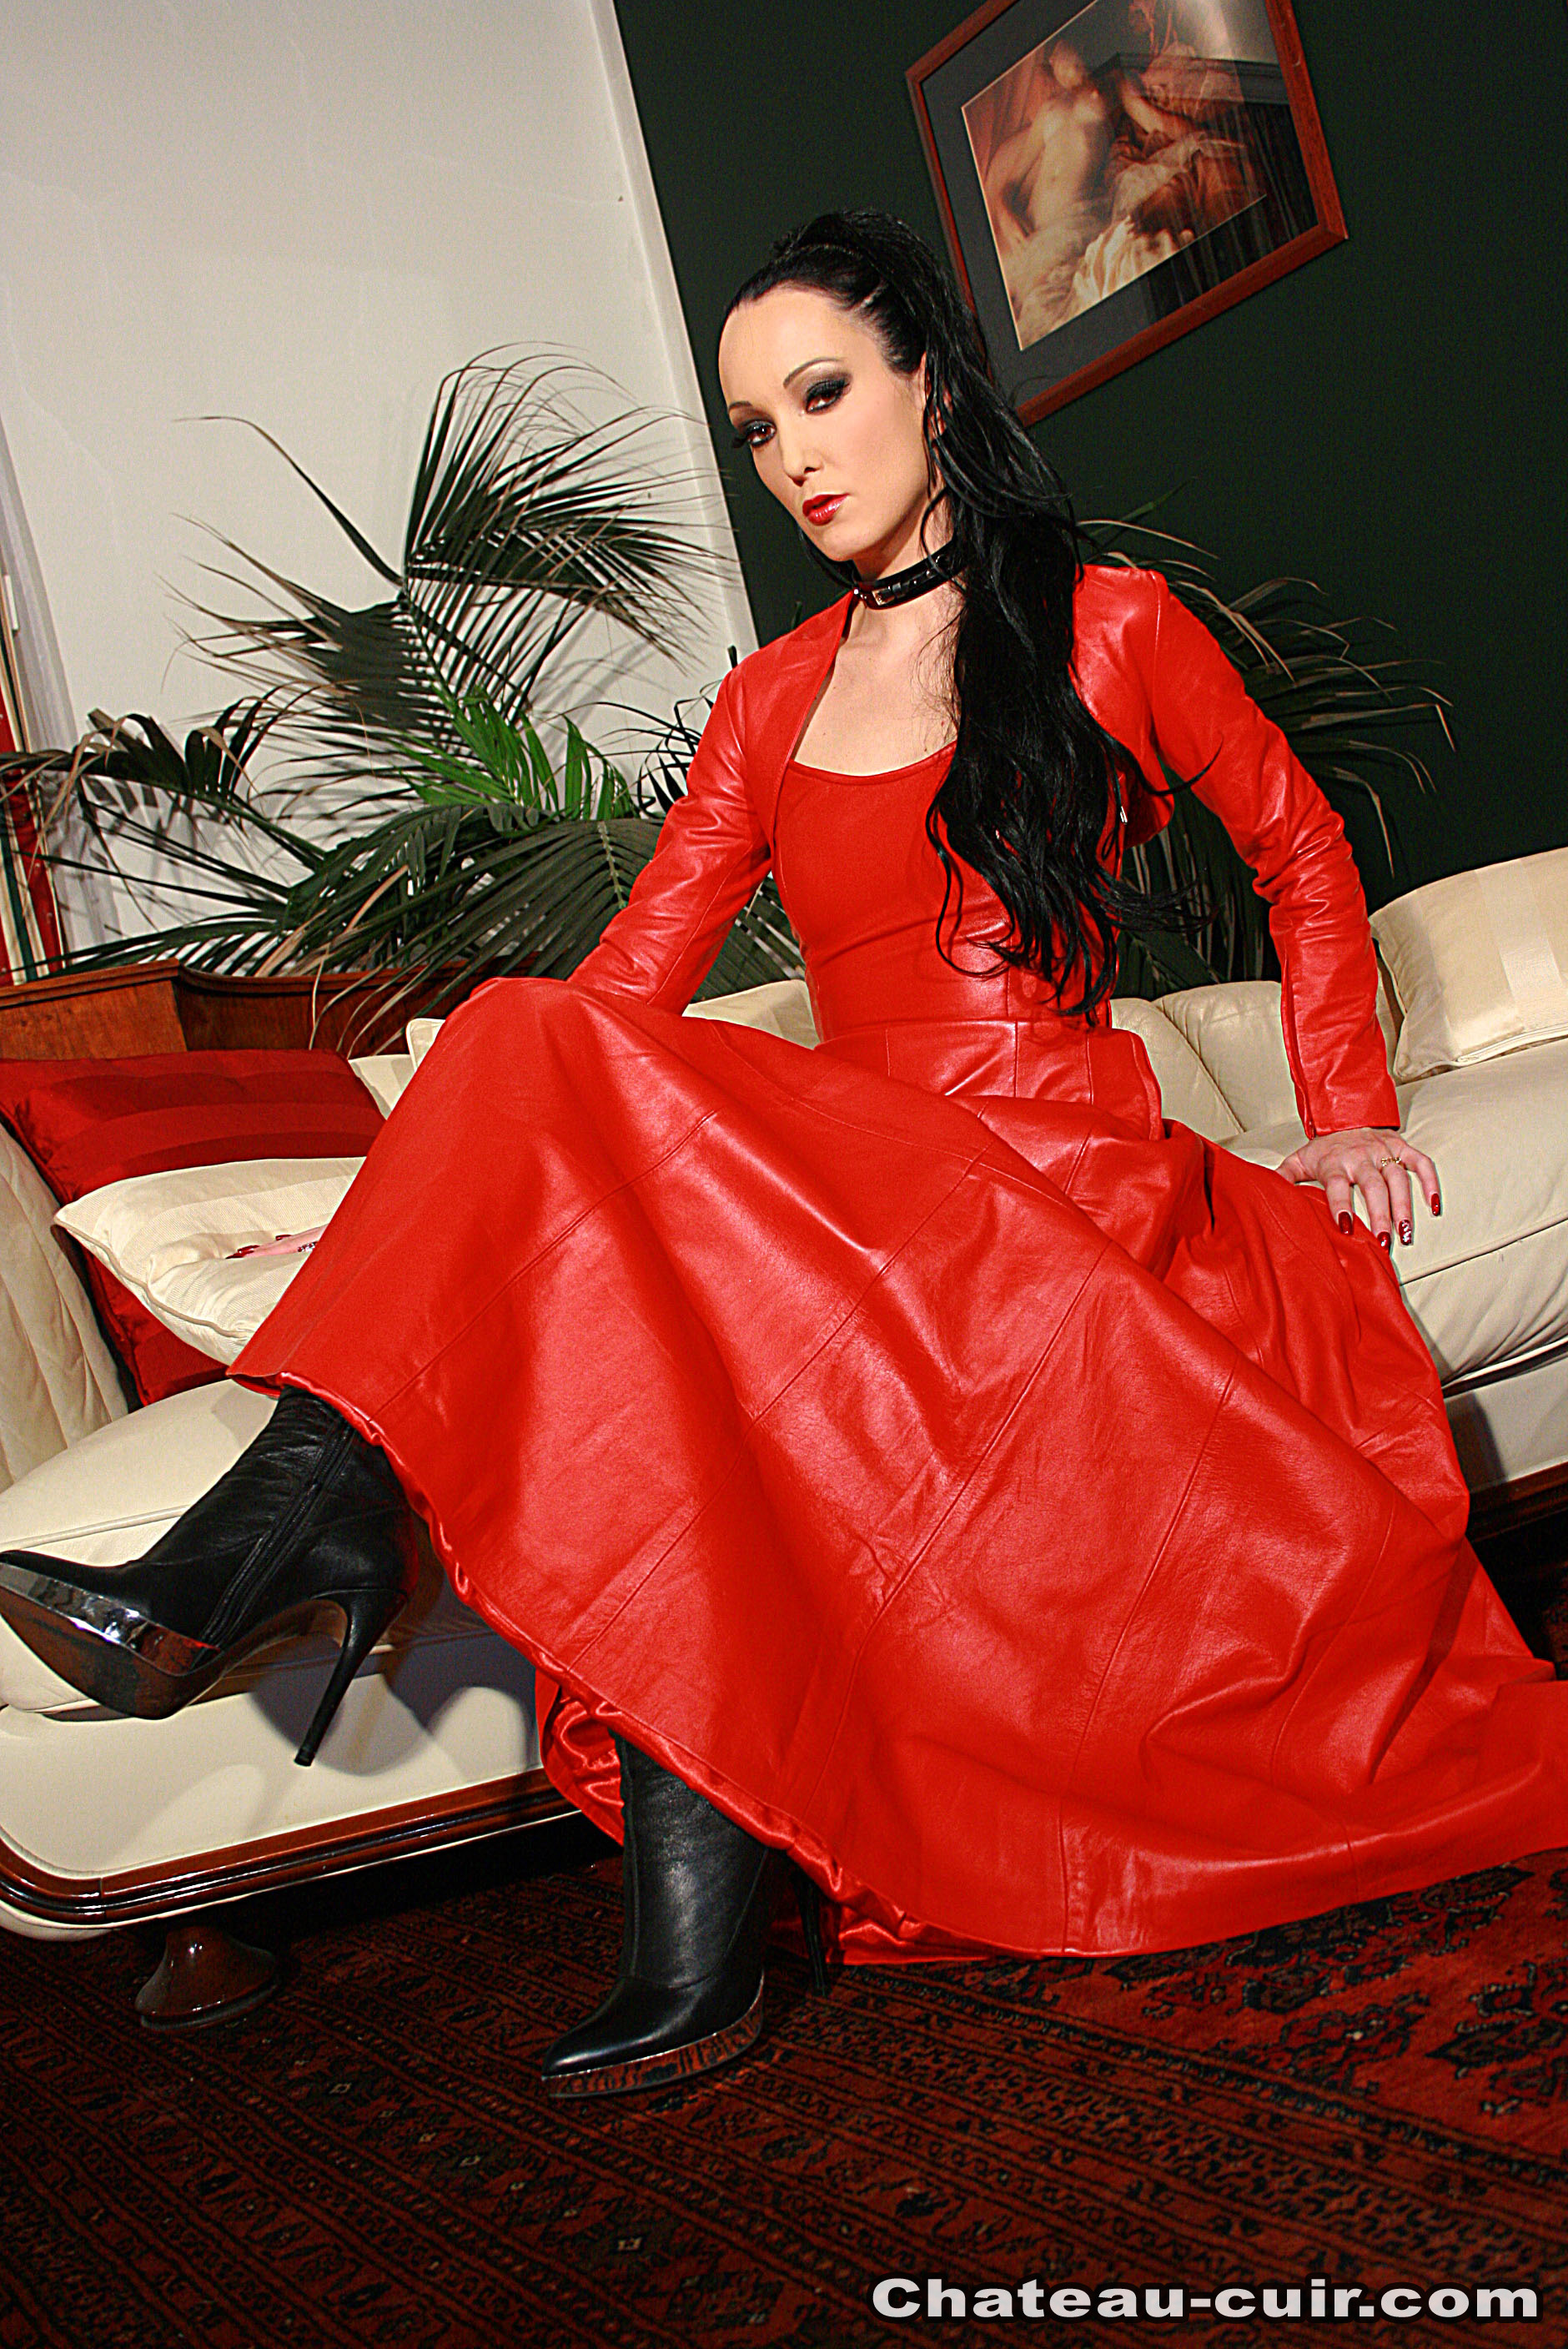 Mistress FetishLiza - red leather dress